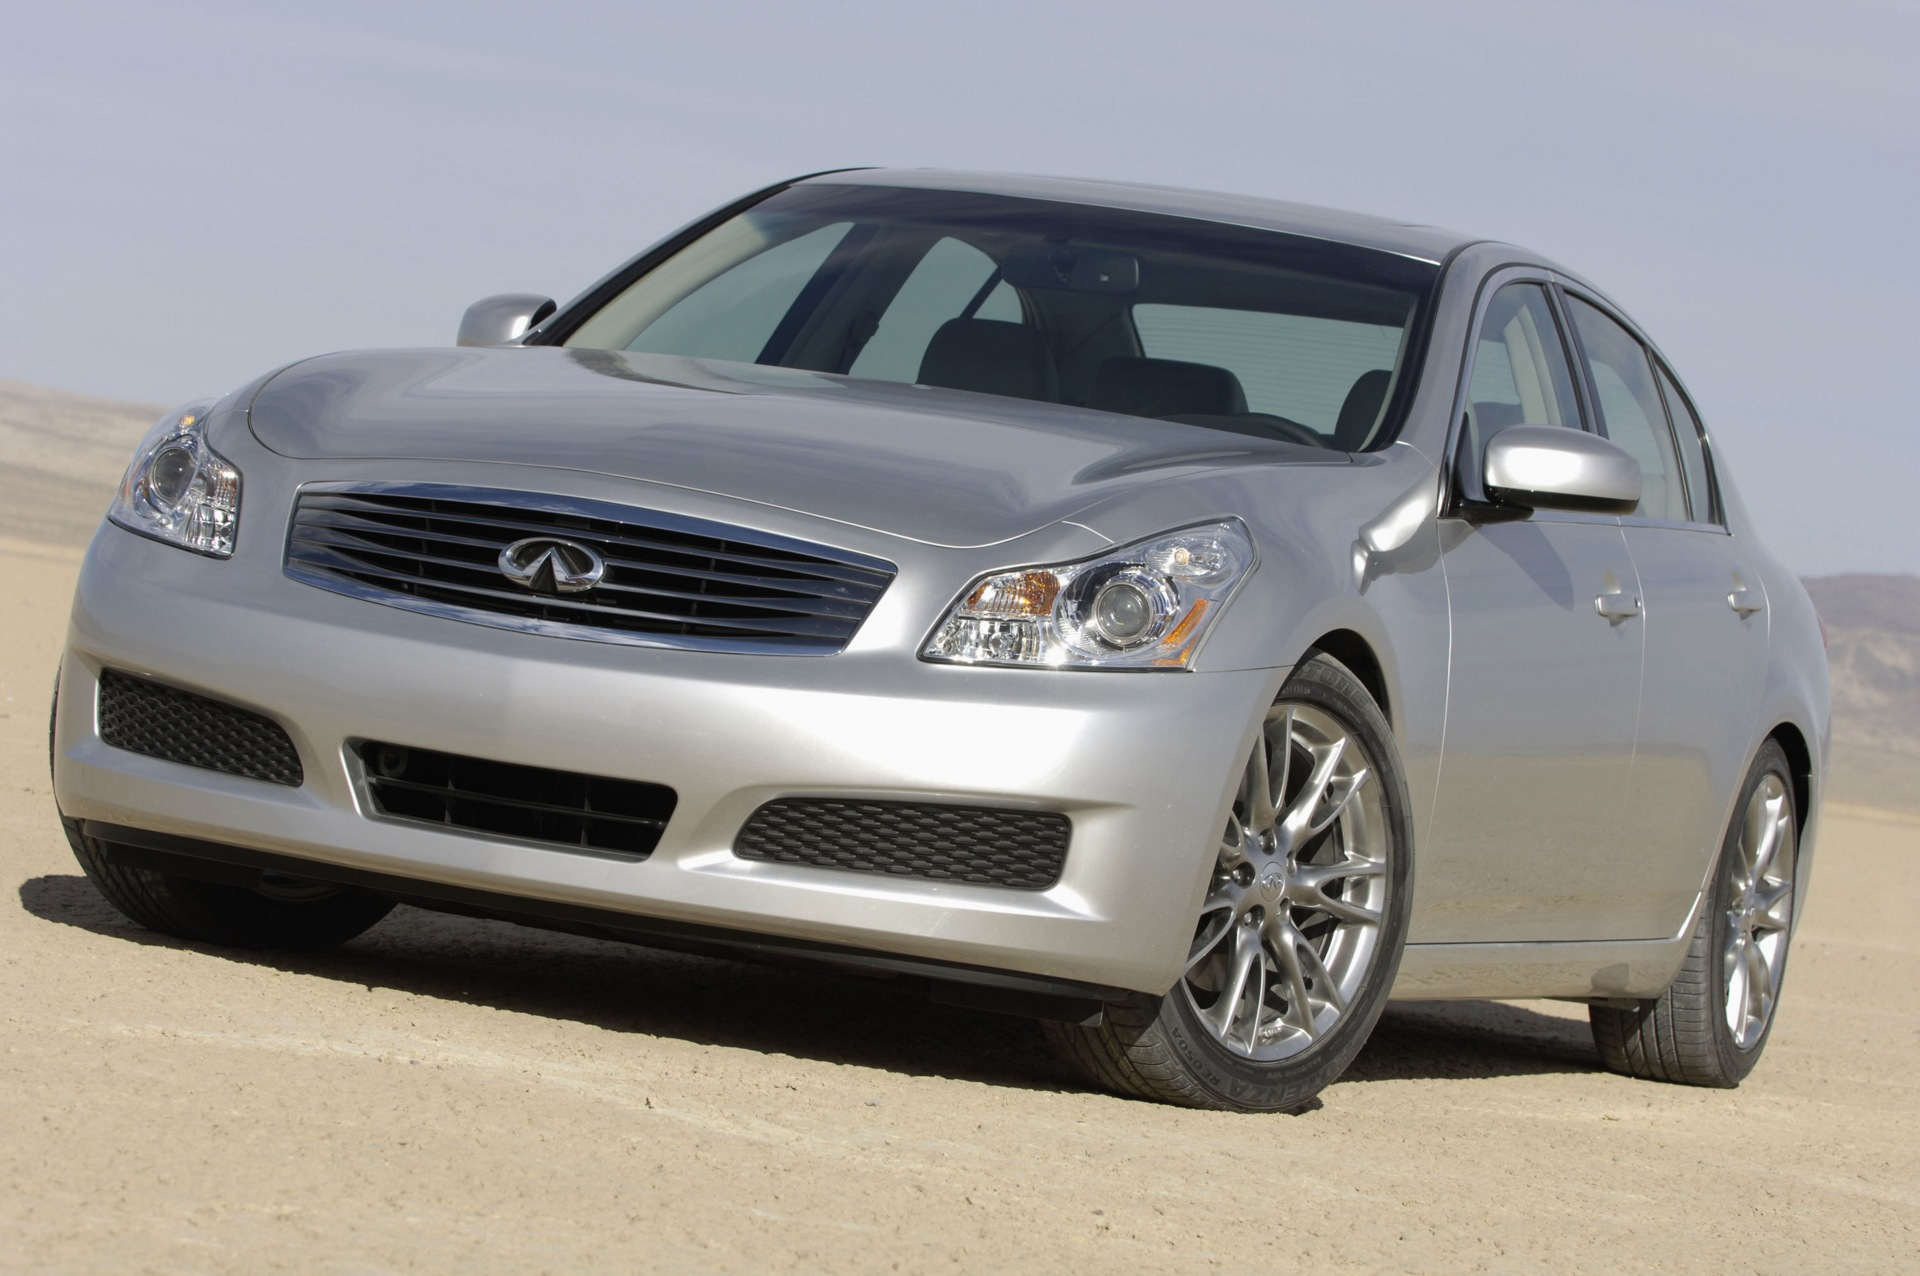 2008 Infiniti G35 News And Information Conceptcarz Com